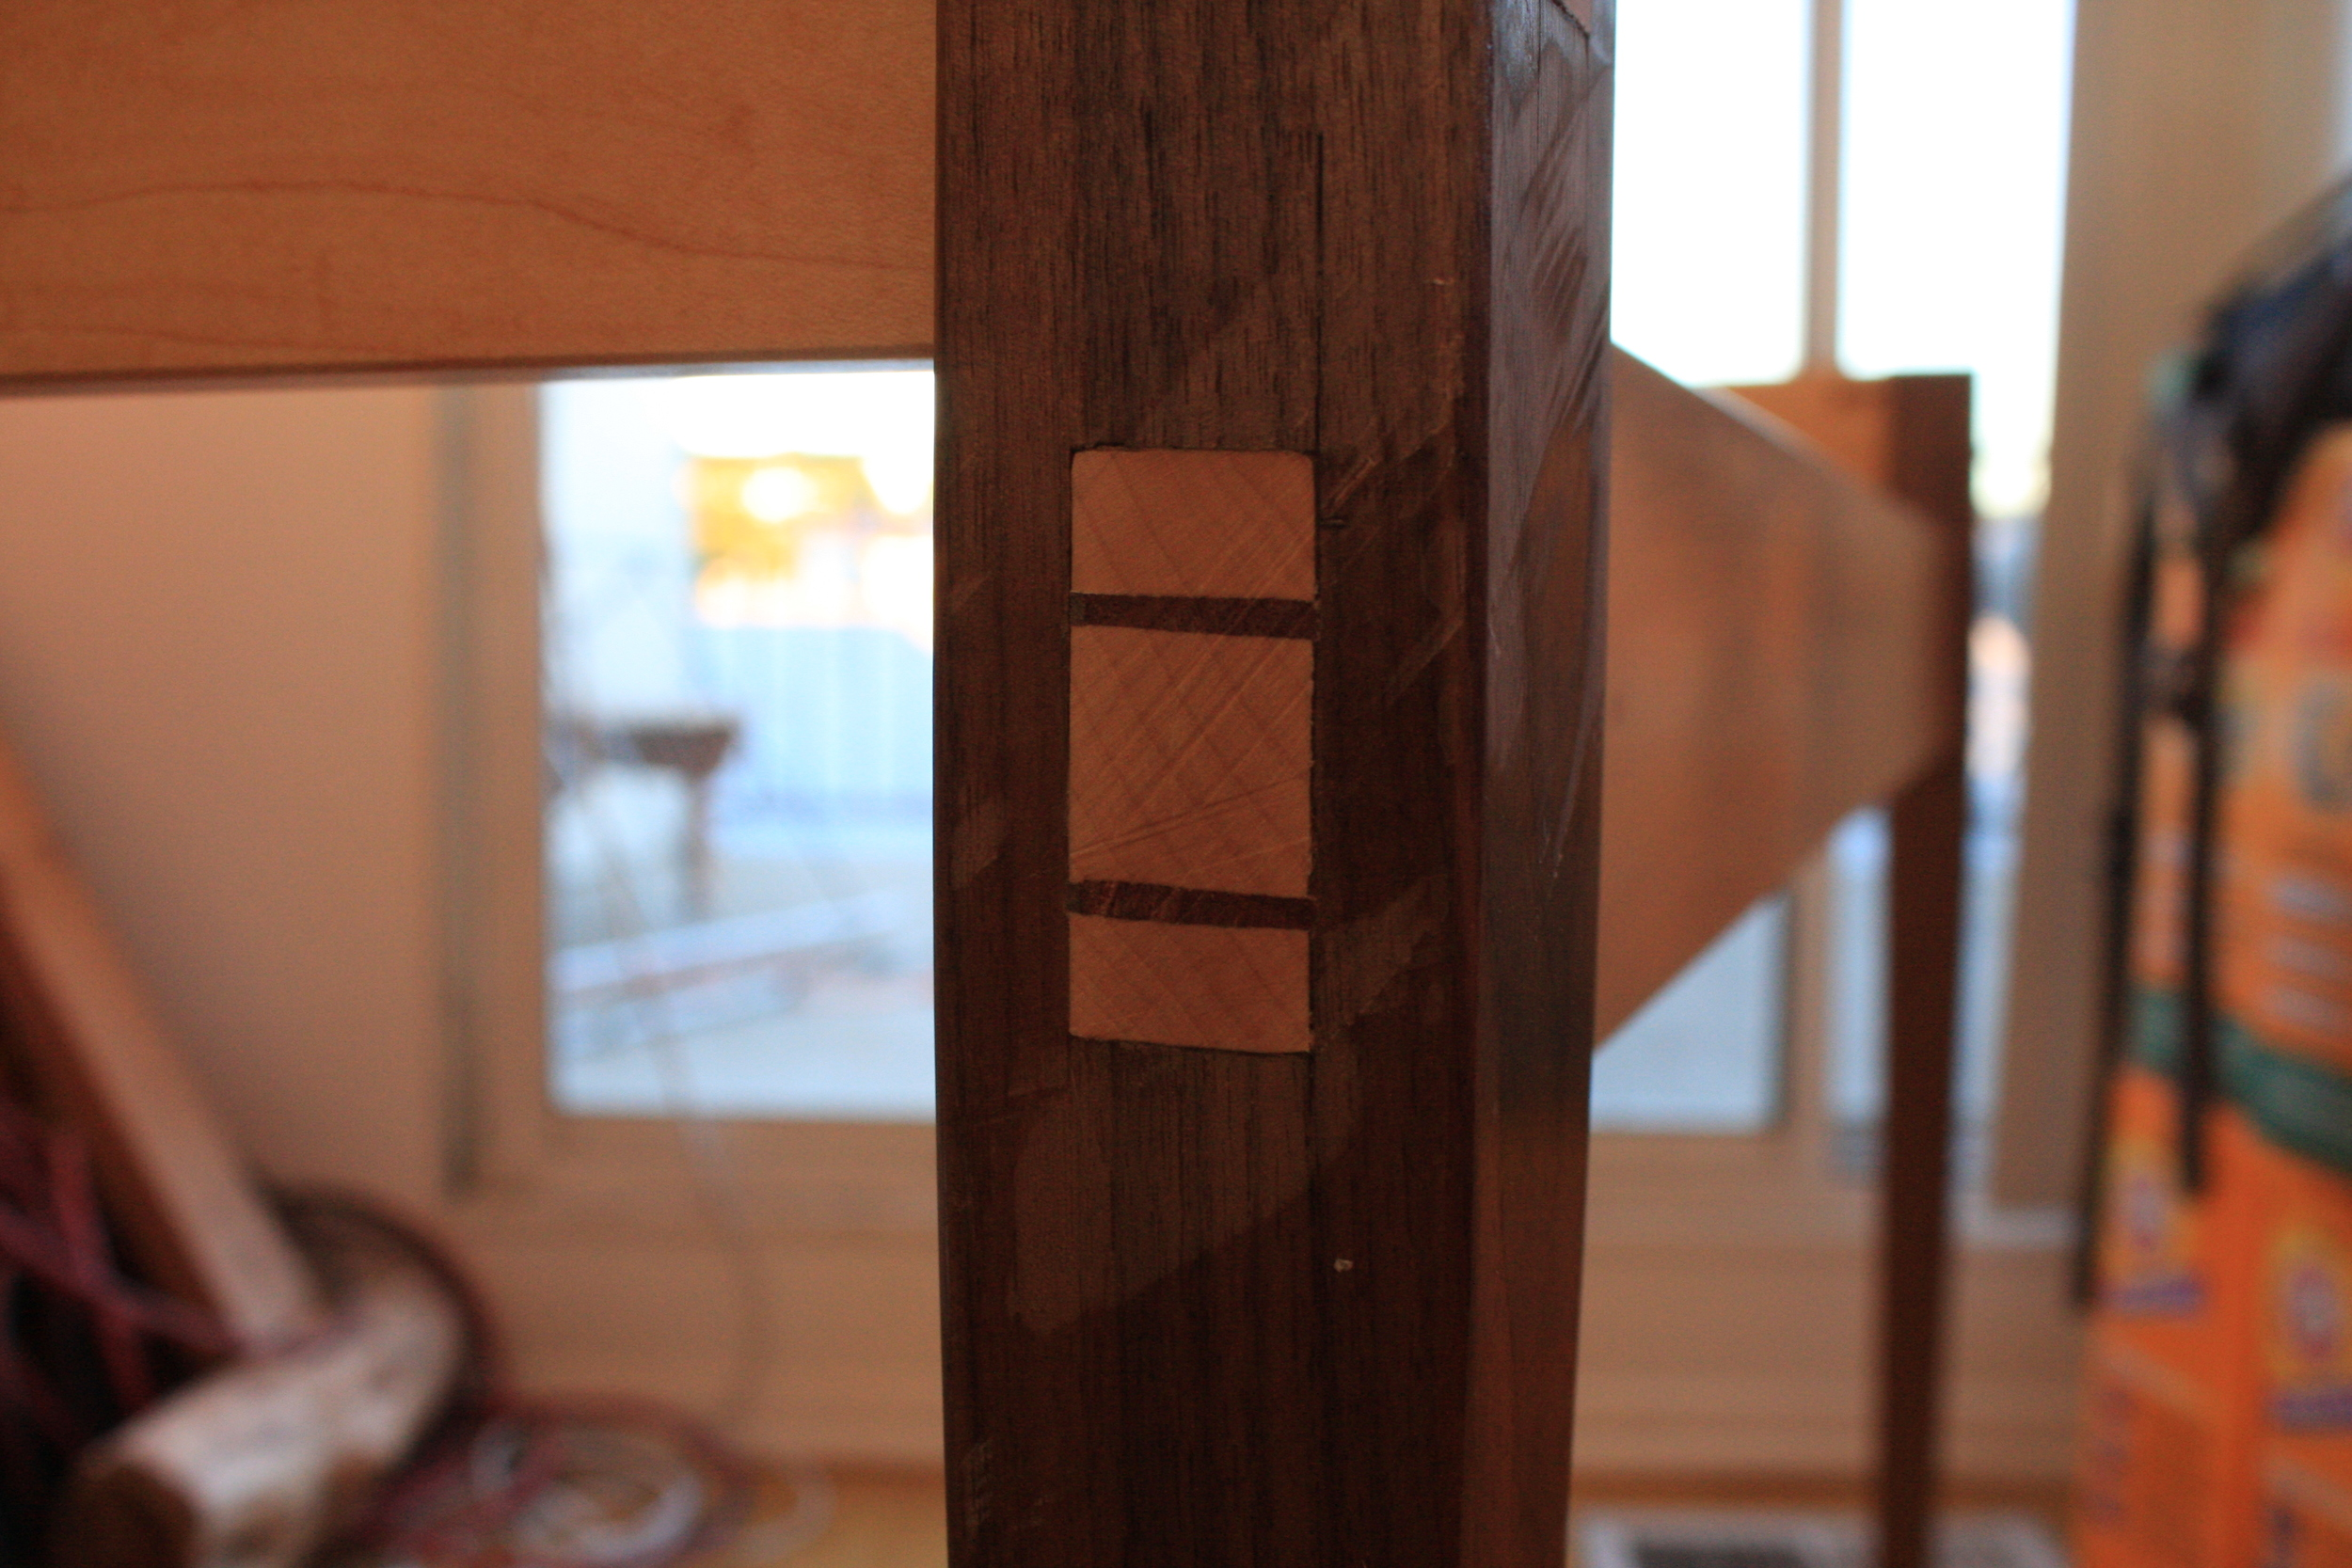 Other wedge joint. You can see the marking gauge marks where I overshot things. :-( Still learning!